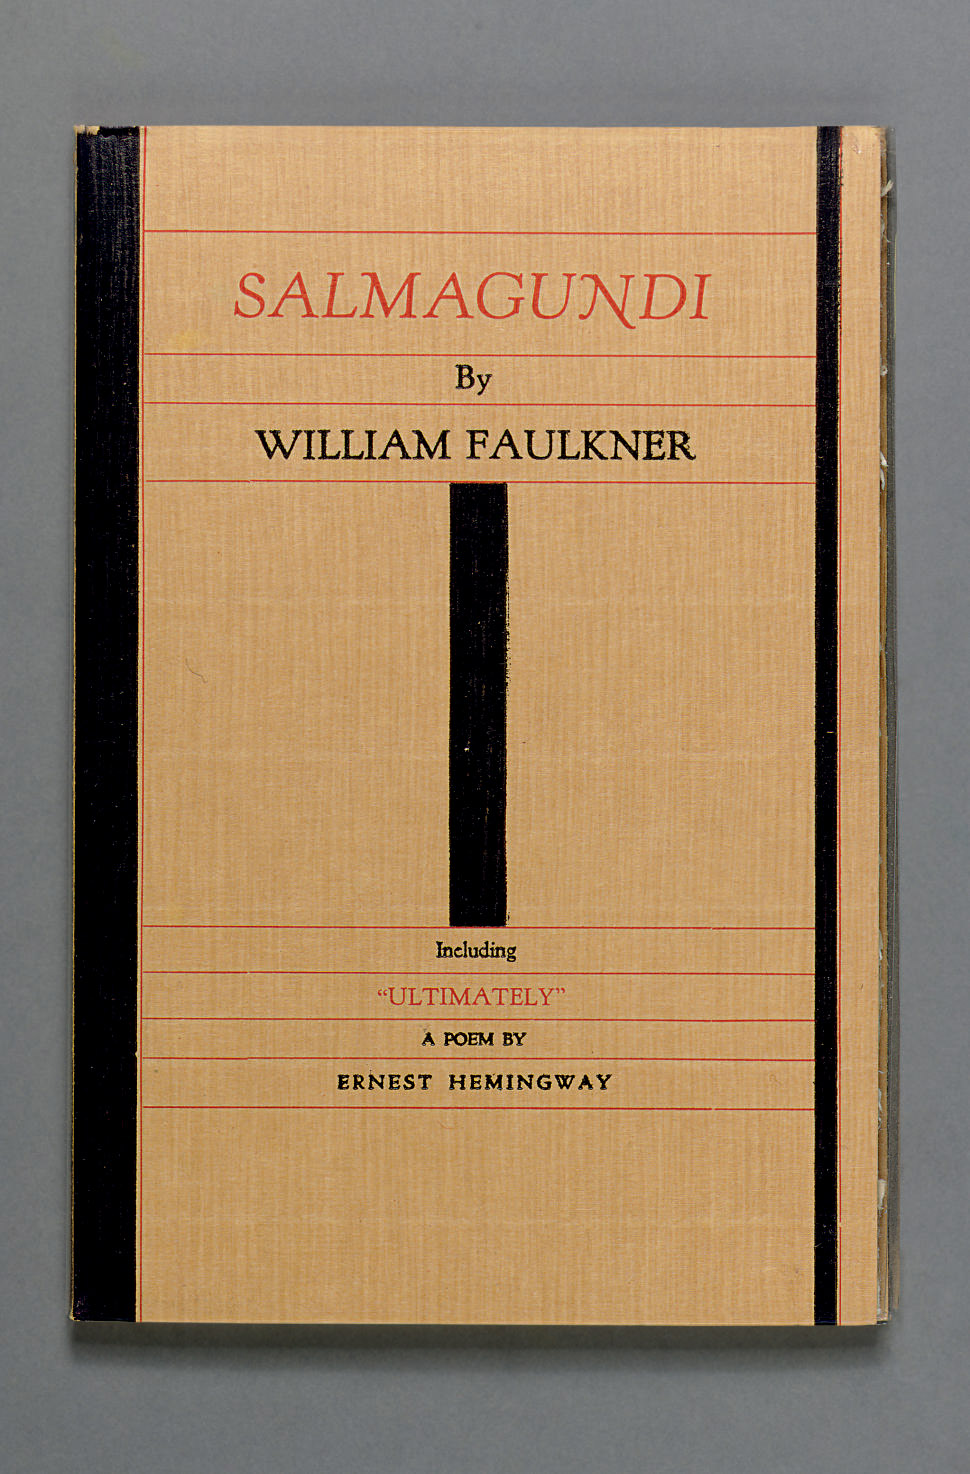 "FAULKNER, William. Salmagundi... Including ""Ultimately"" A Poem by Ernest Hemingway. Milwaukee: Casanova Press, 1932."